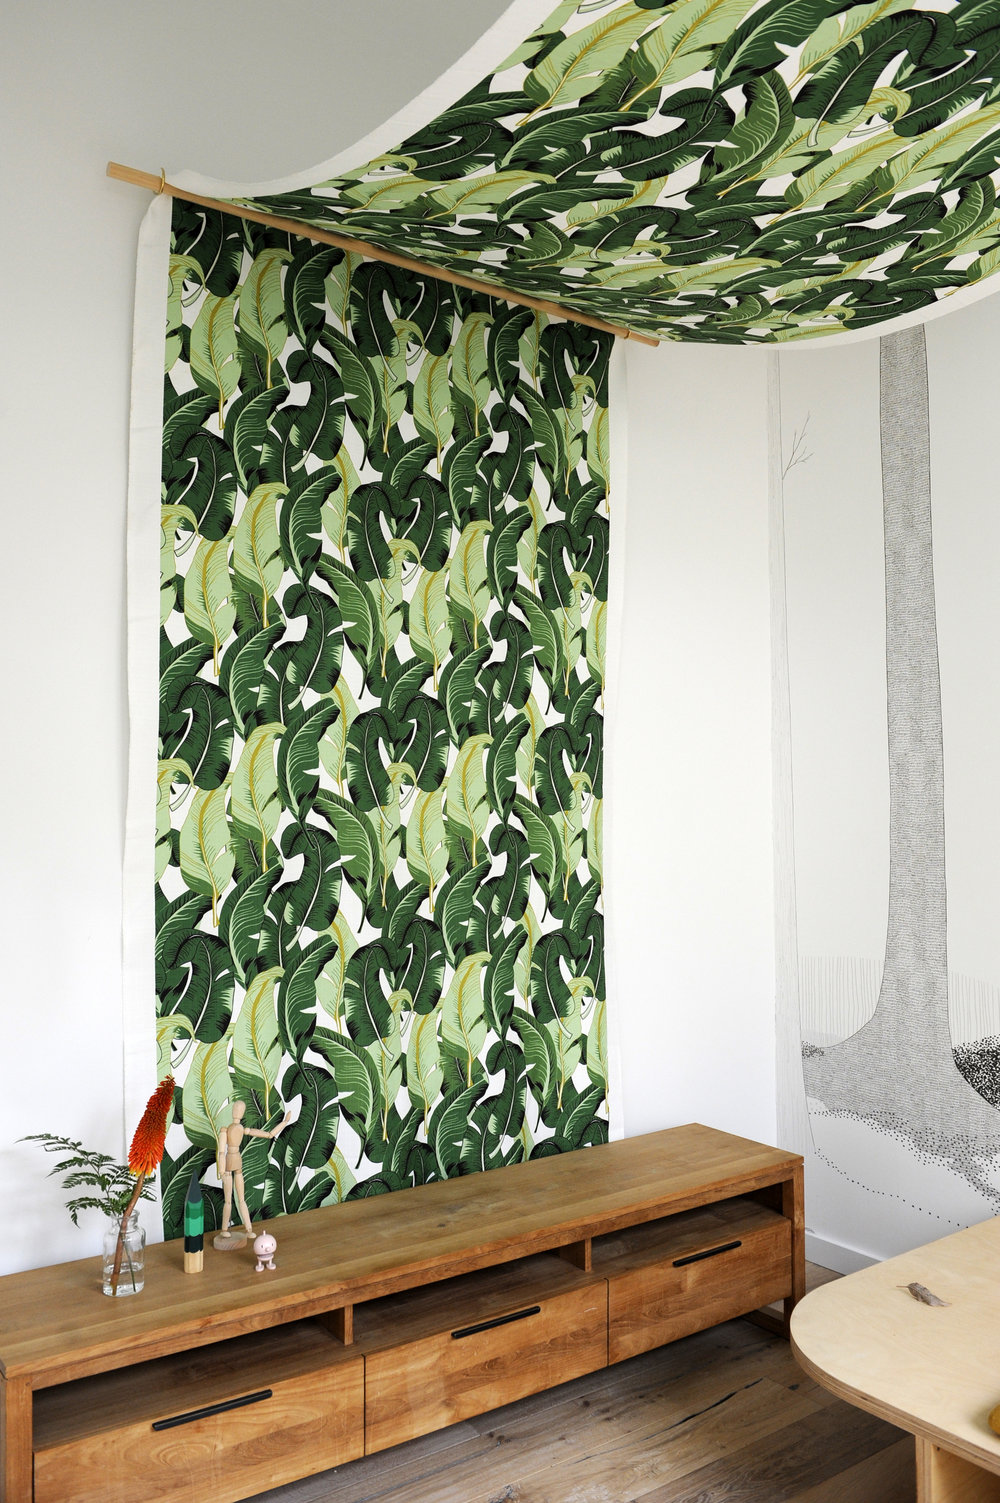 FEATURE CANOPY  + WALLPAPER | To enhance the 4m + ceilings, the simple black and white wallpaper and leafy canopy provided a green escape / contrast to the all too familiar life behind a TV screen | Image by Vanessa Hall